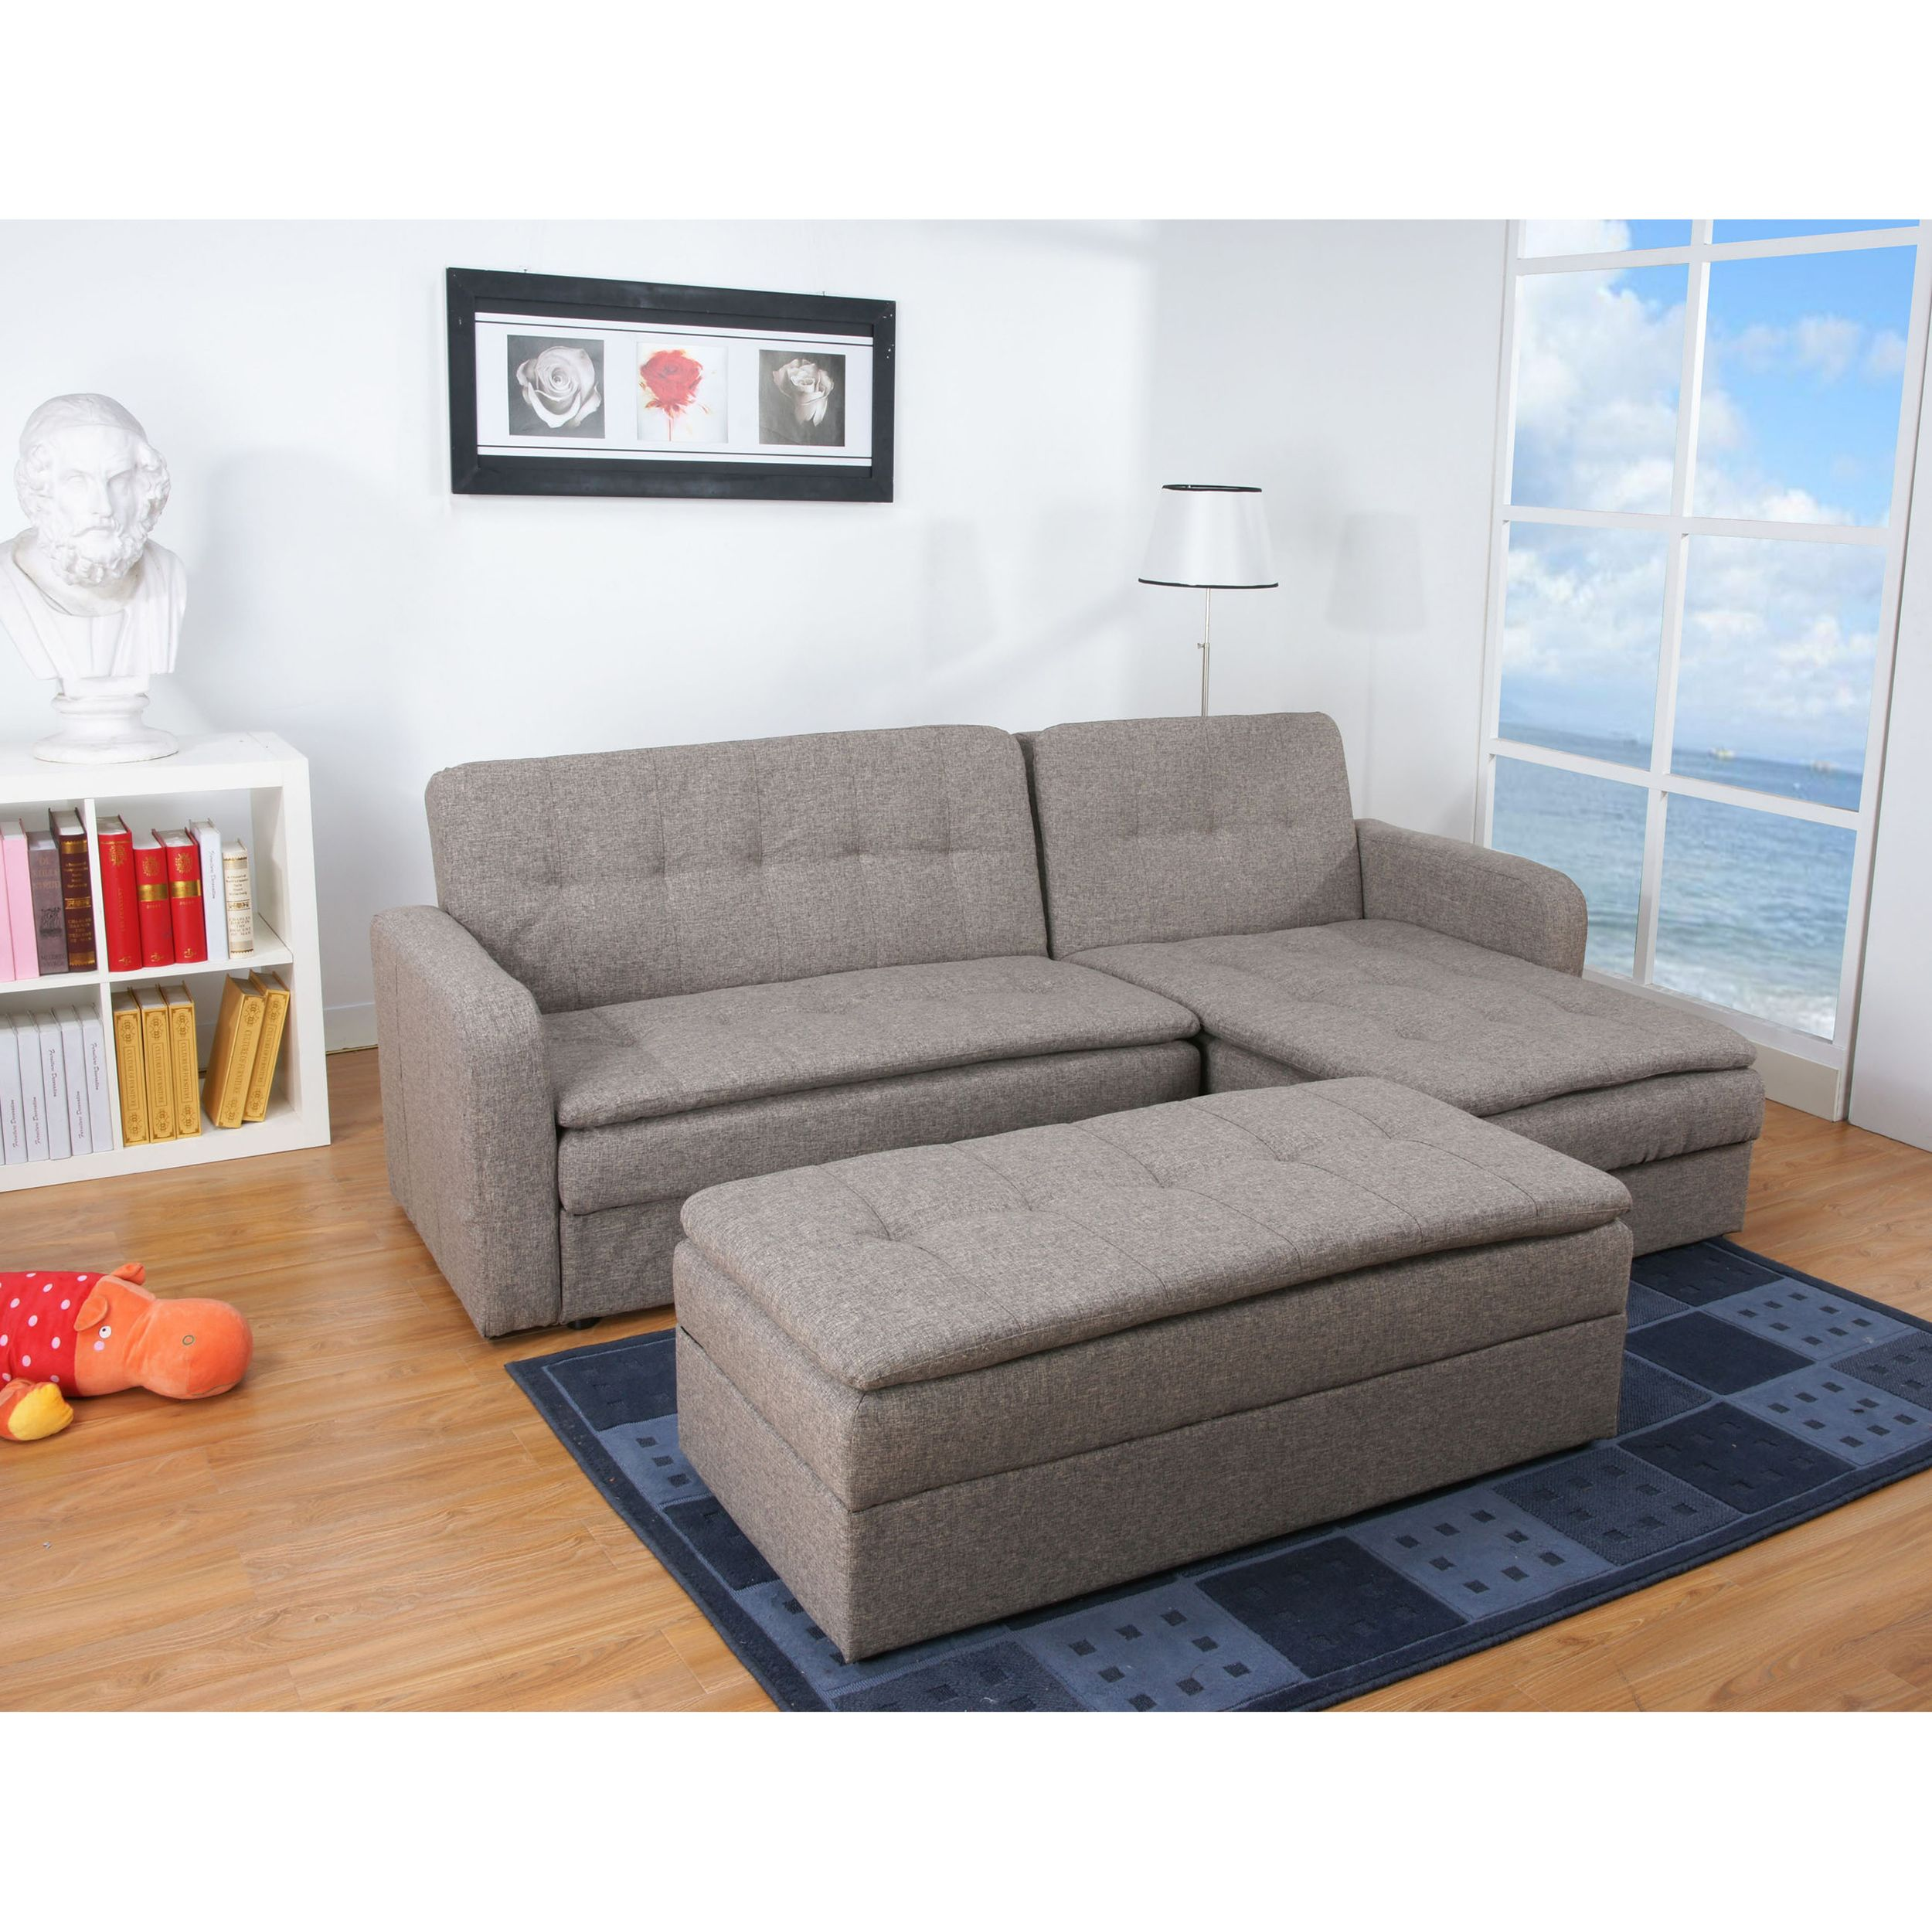 Denver Rind Finish Double Cushion Storage Sectional Sofa Bed and